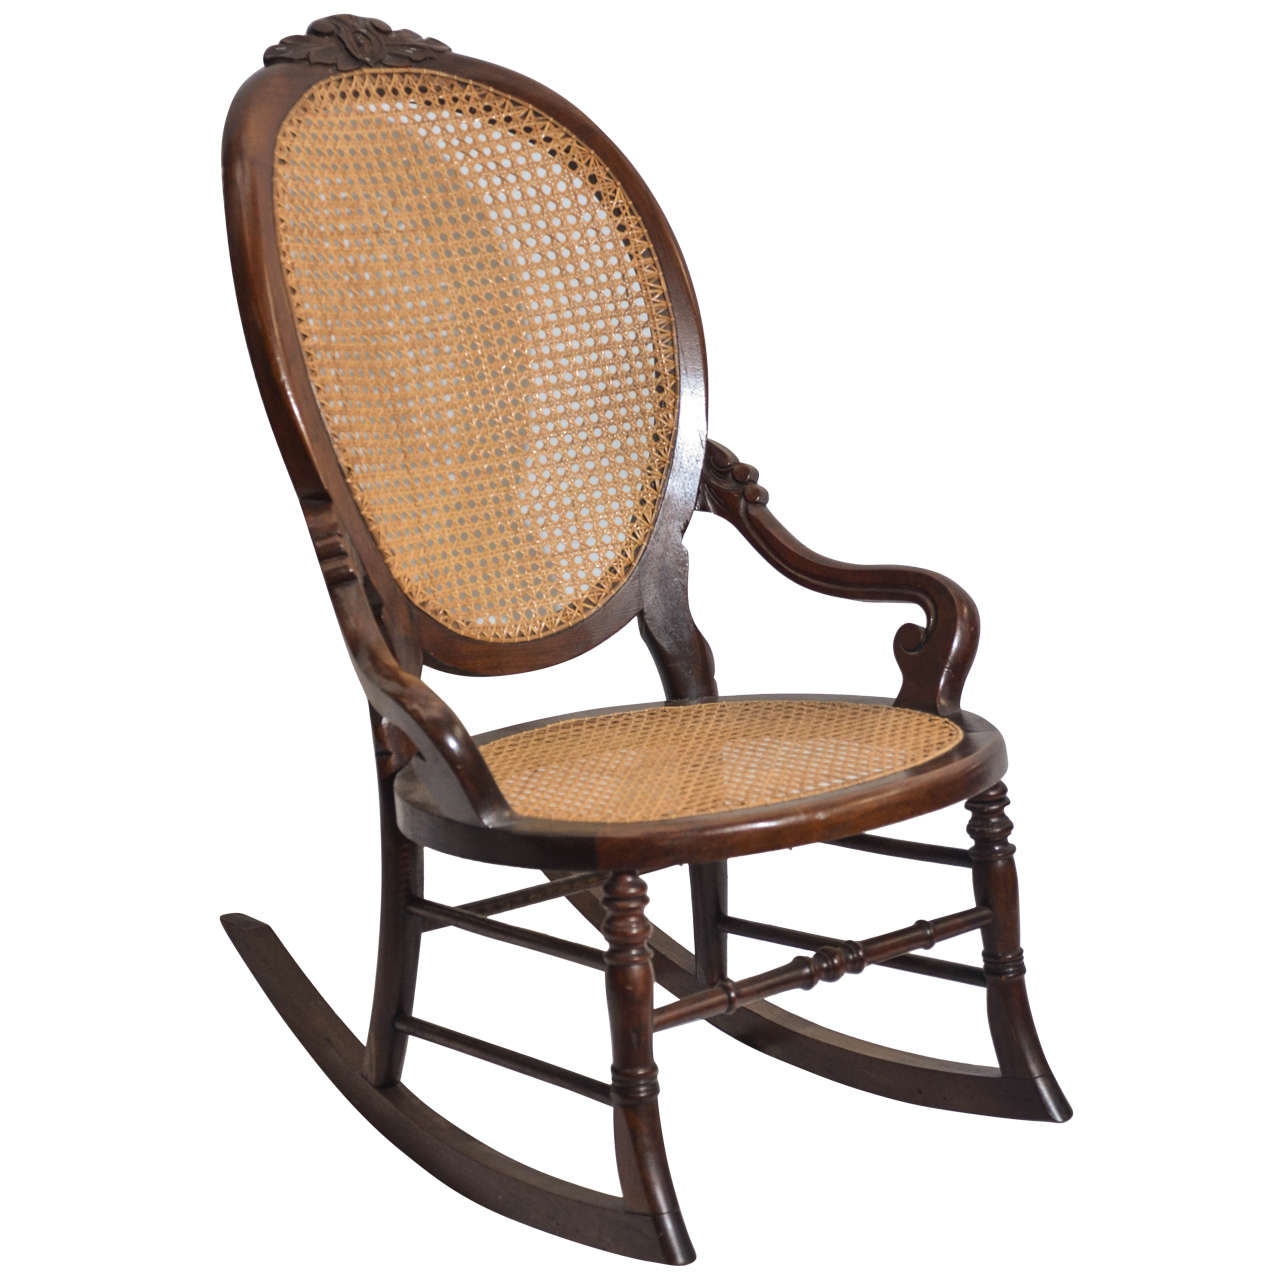 Victorian walnut lady s rocking chair for sale at stdibs